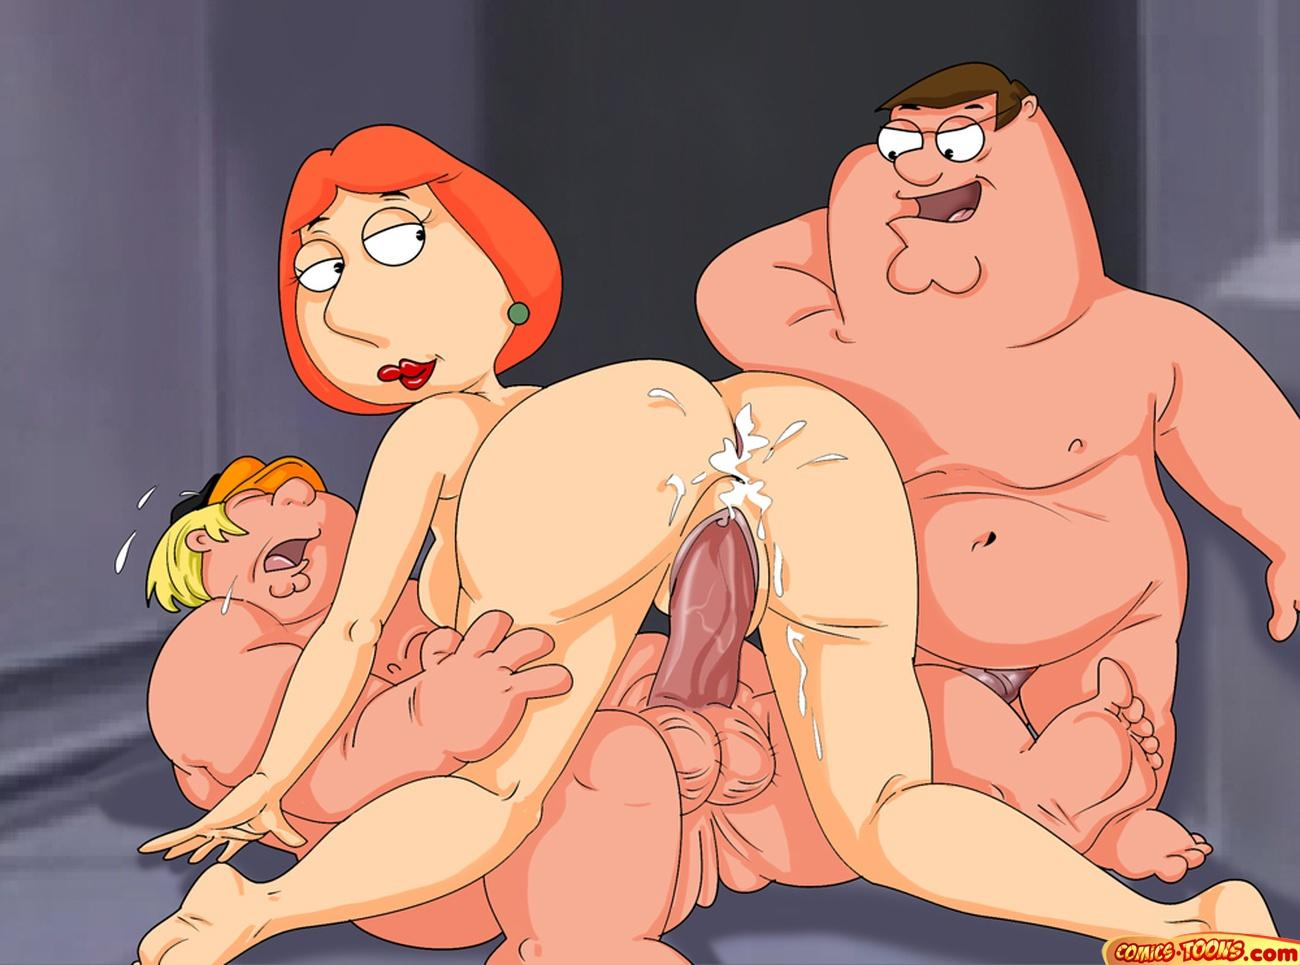 Agree, the family guy porn lois and chris sex have hit